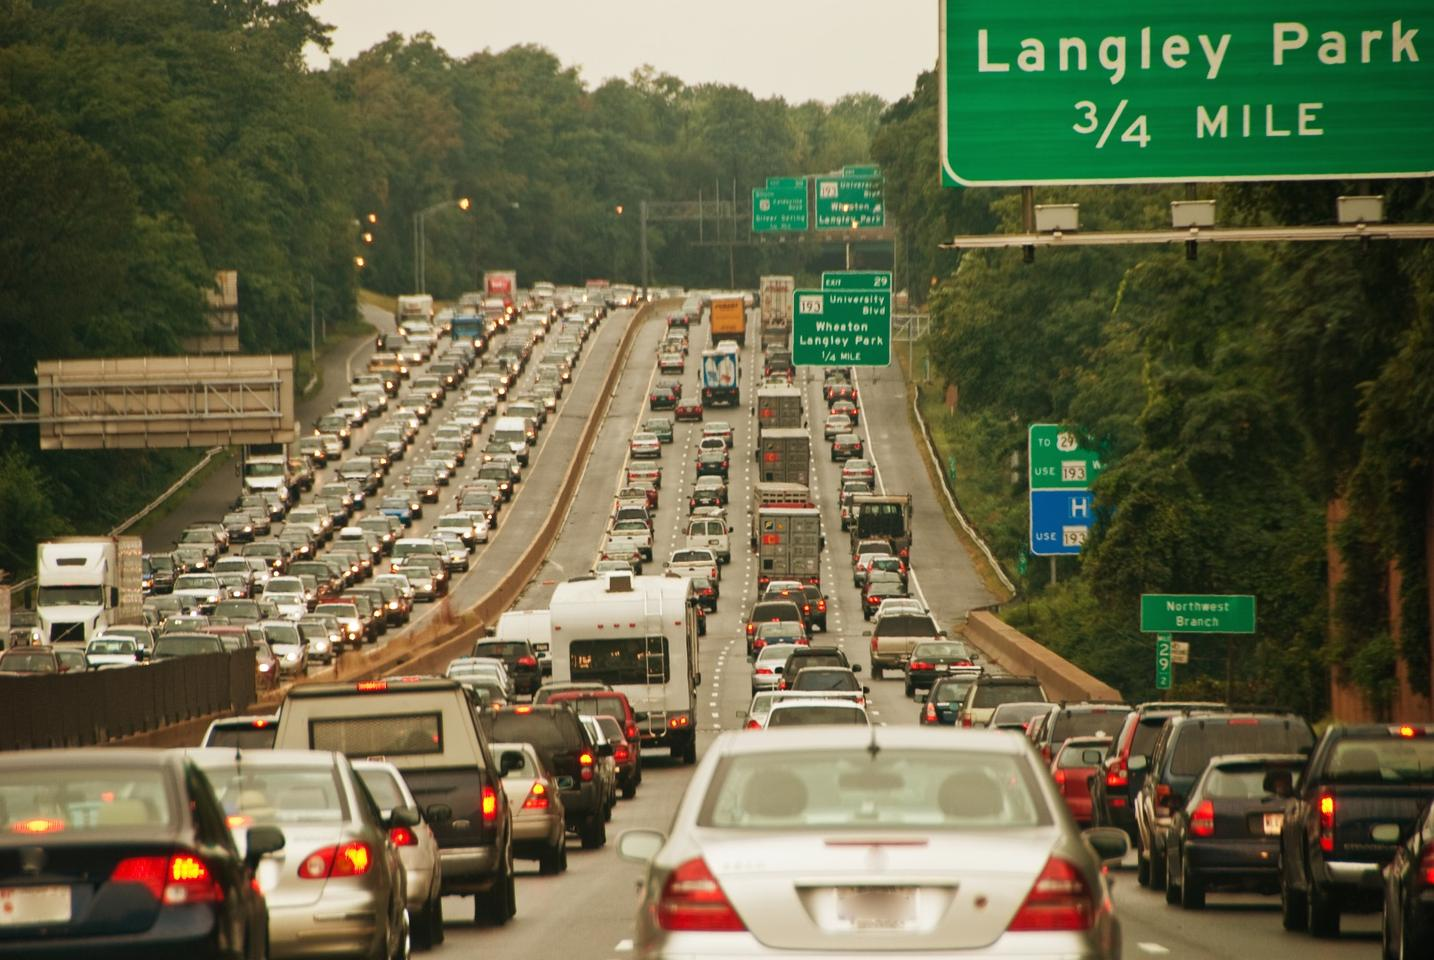 If adopted, the Clean Cars 2040 bill would require all new passenger vehicle registrations to be zero-emissions